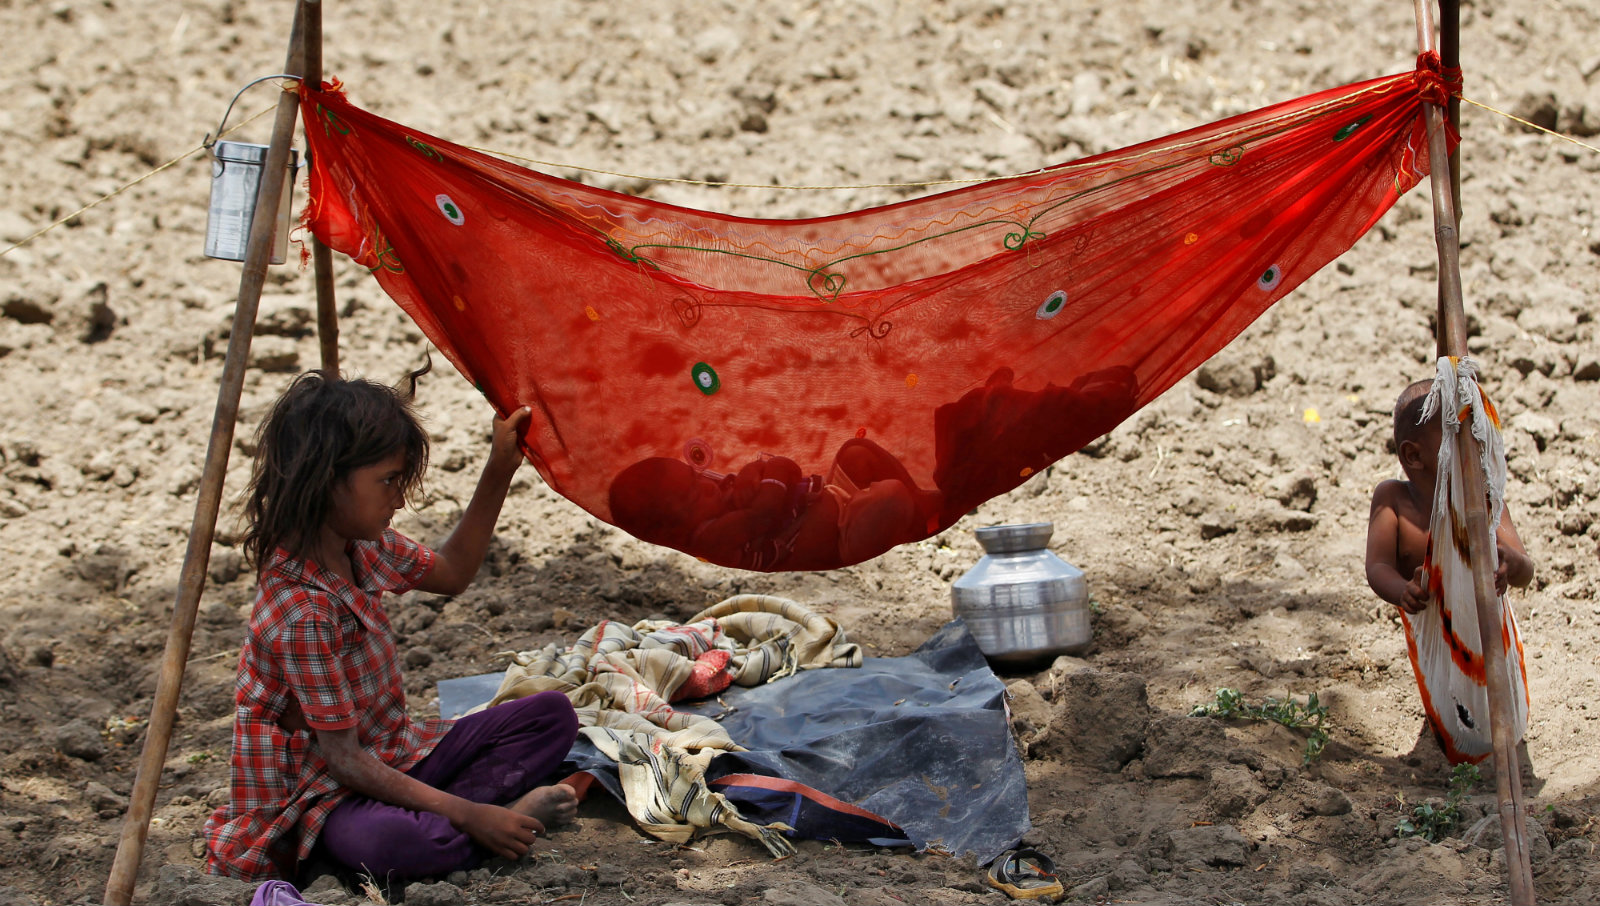 A girl sits next to her sibling who is resting in a hammock under the shade of a tree in a field on the outskirts of Ahmedabad, India May 31, 2016.